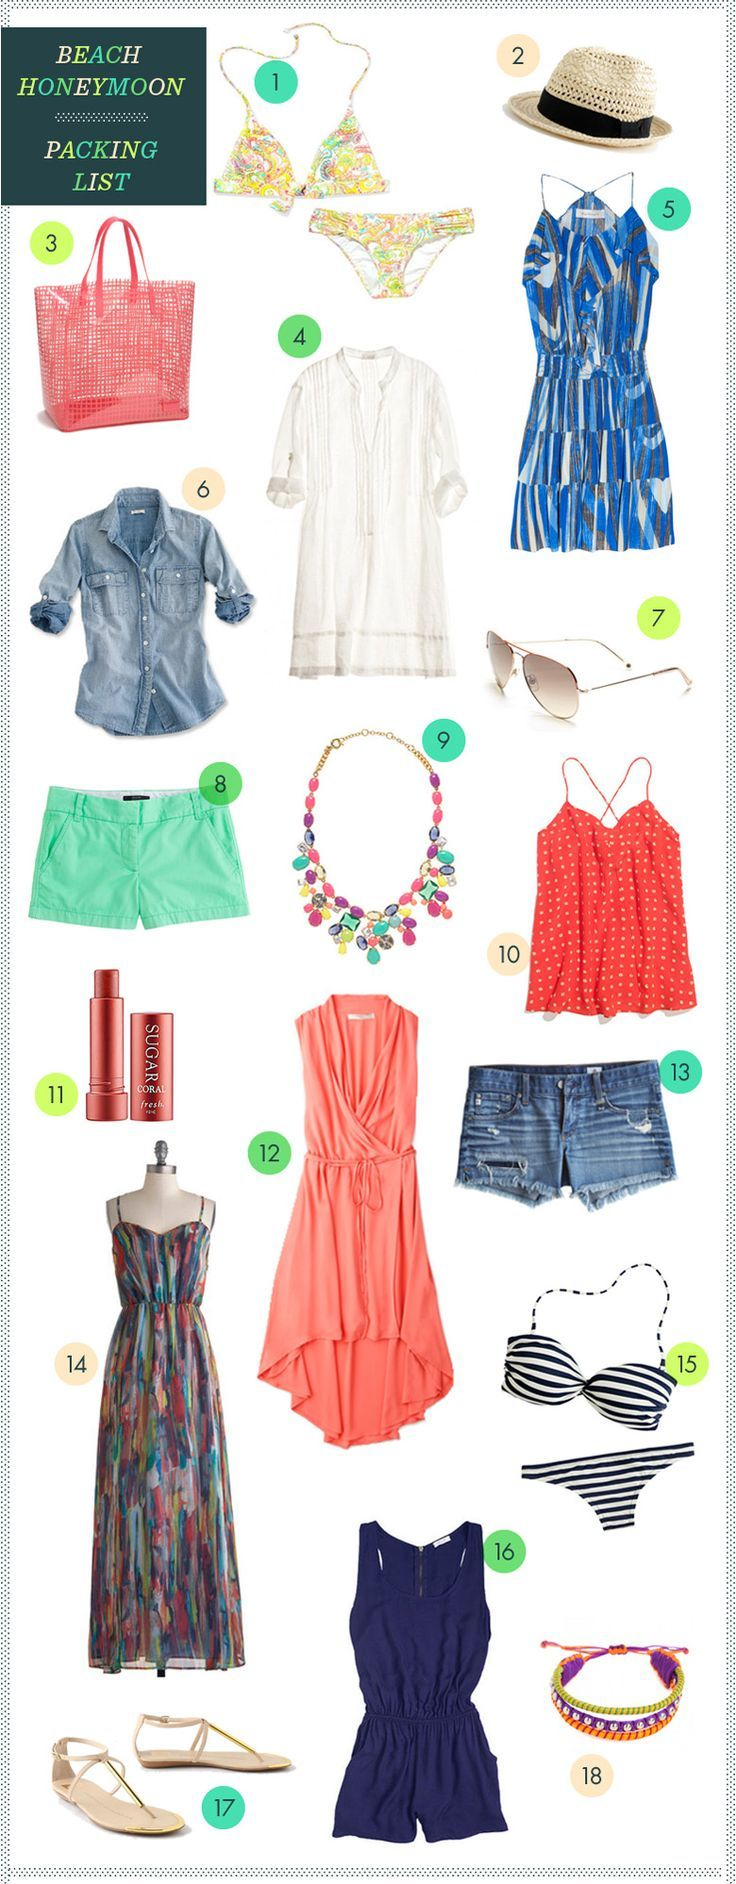 REVEL: Beach Honeymoon Packing List..... I have no intention in going on a honeymoon anytime soon, but this stuff is adorable!